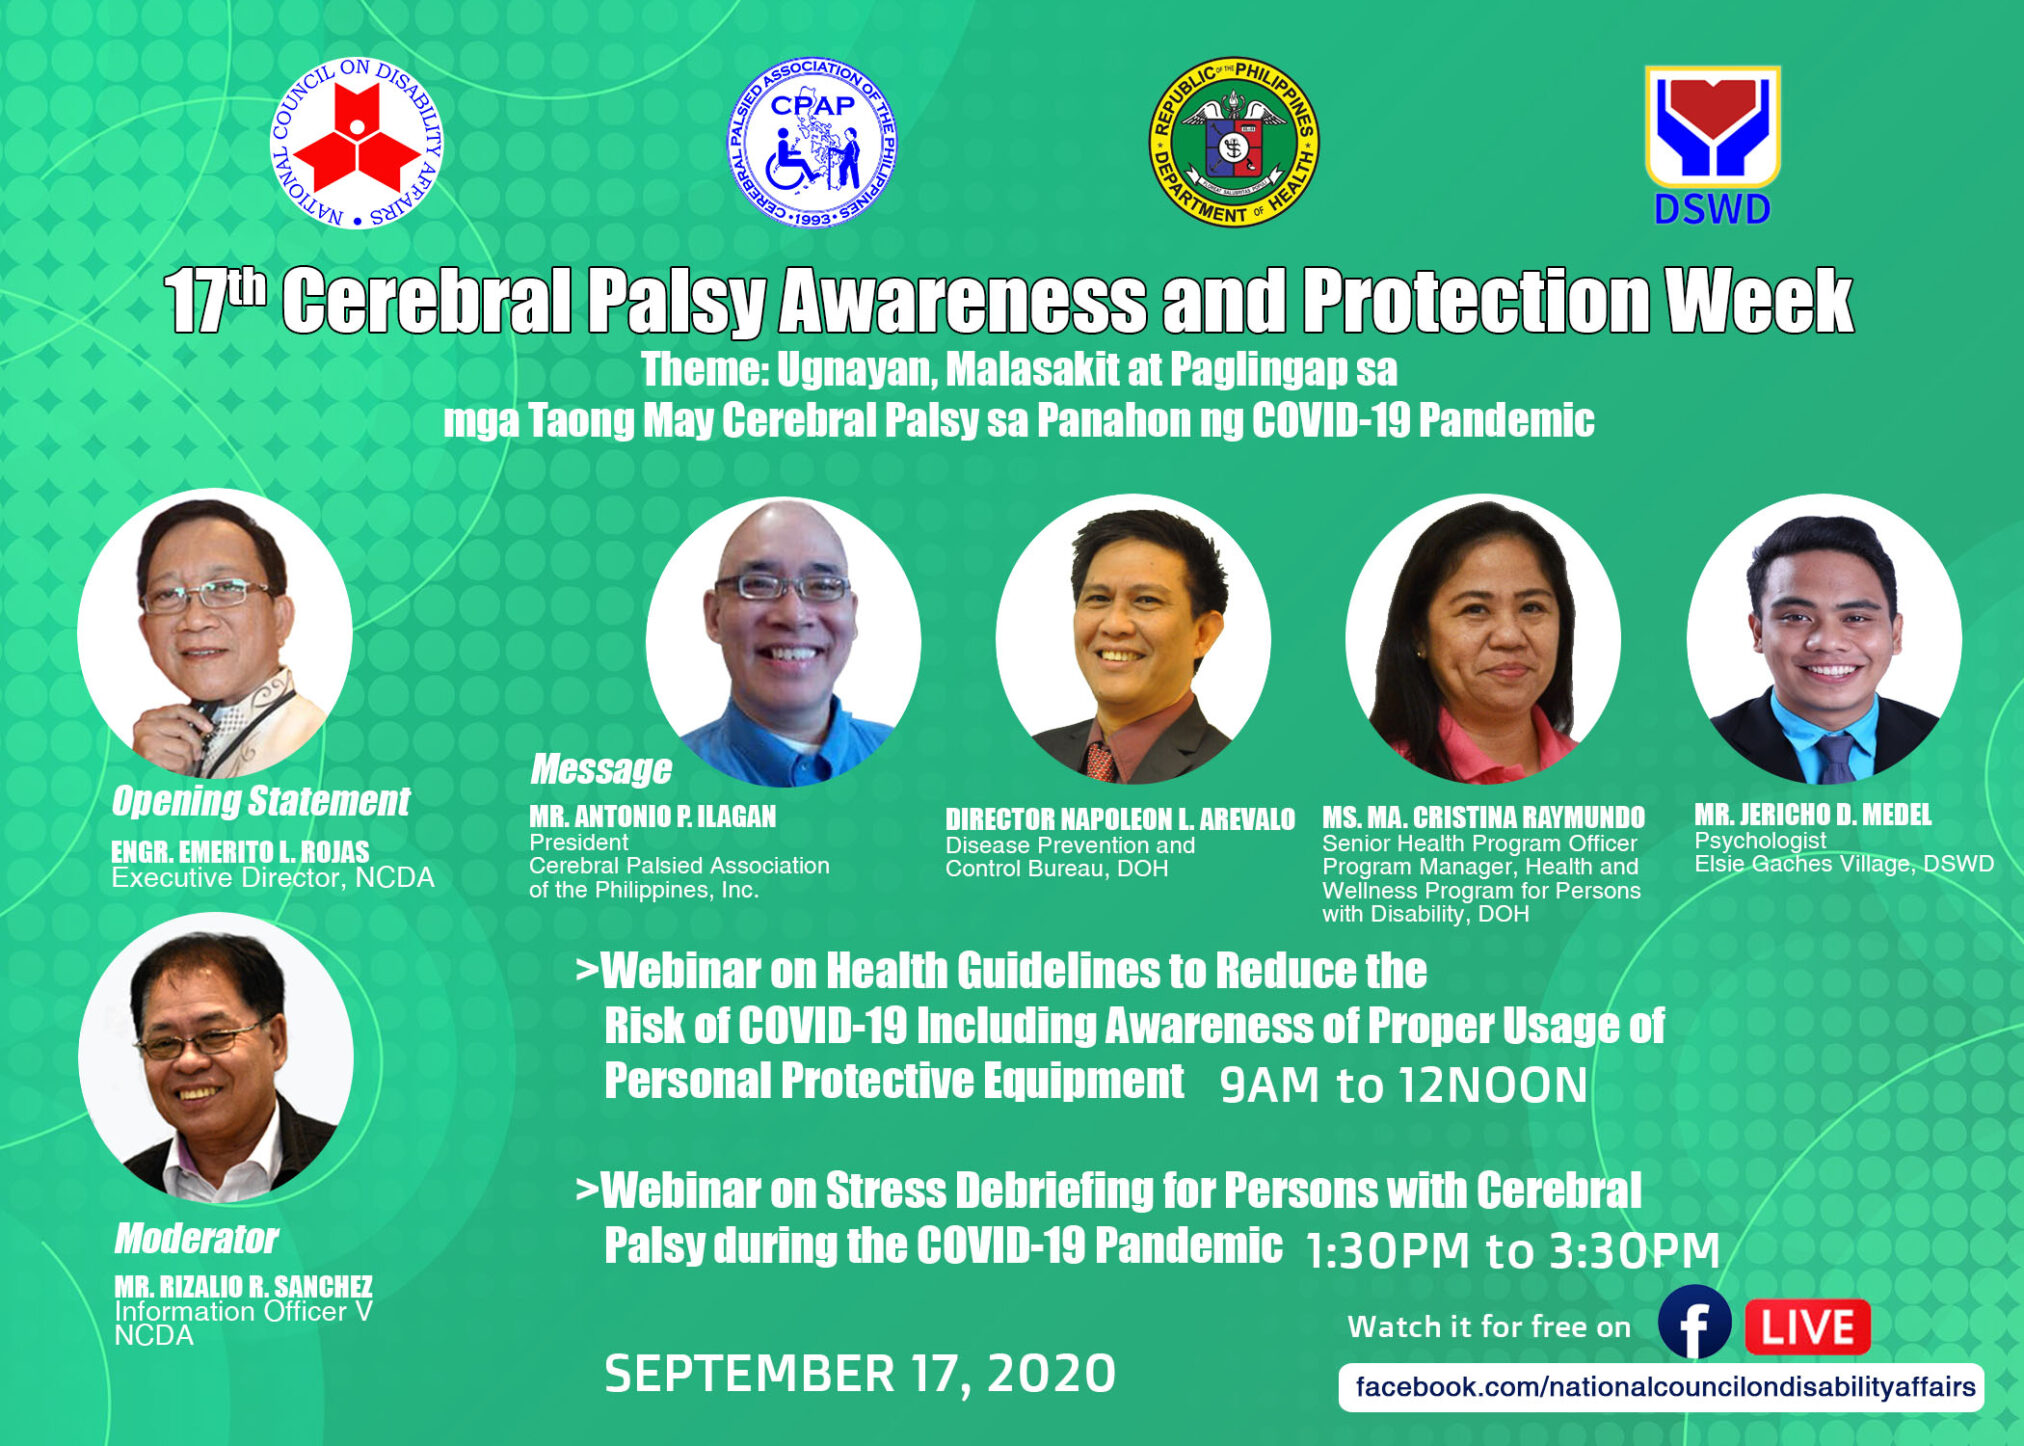 Webinar on Health Guidelines to Reduce the Risk of Covid-19 Including Awareness Usage of Personal Protective Equipment